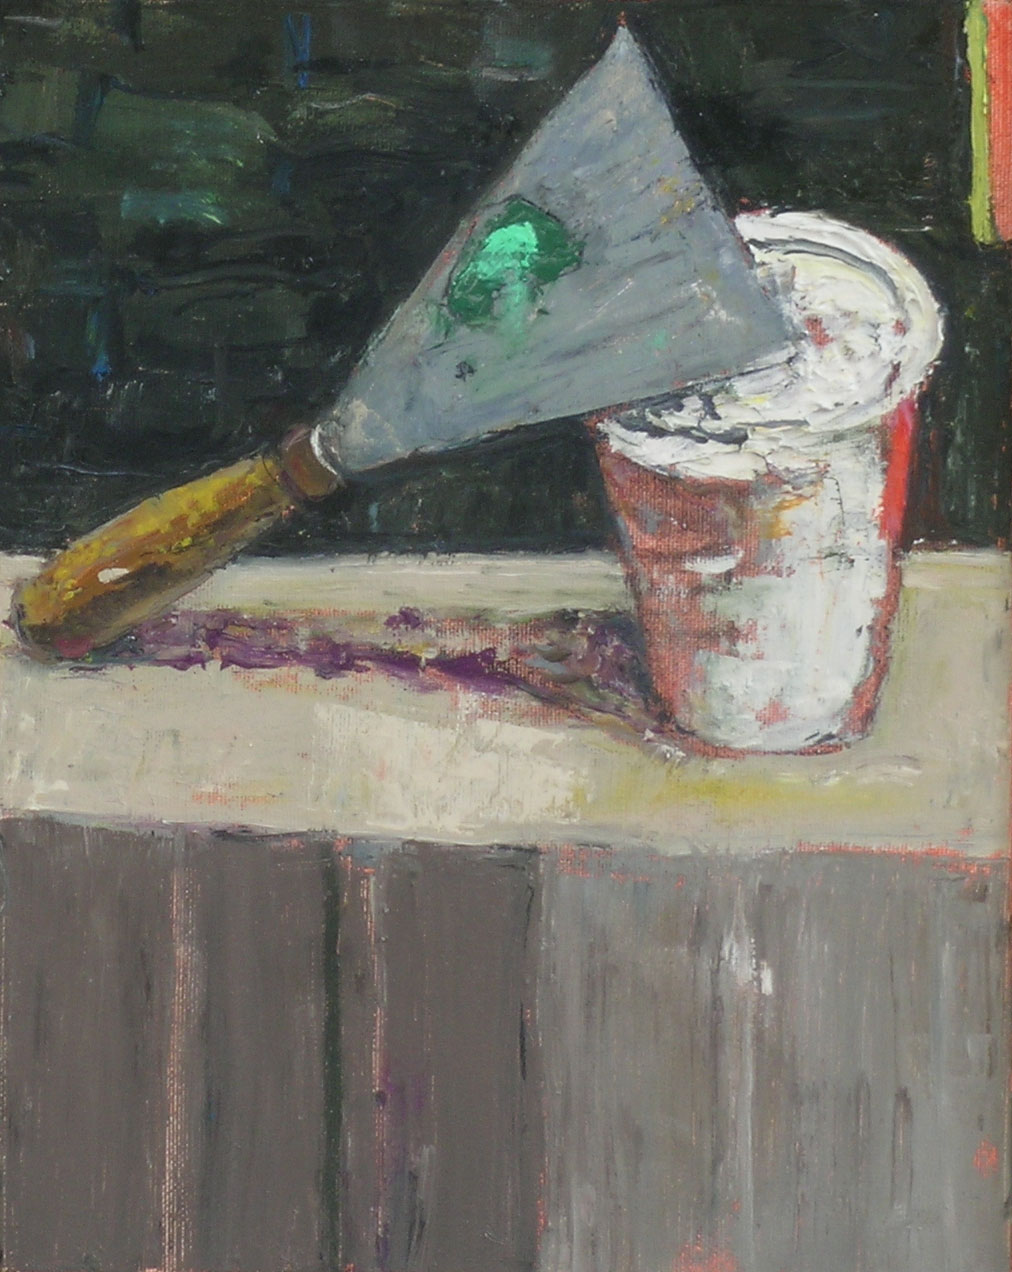 Paint, 2005 oil on canvas, 10 x 8 inches